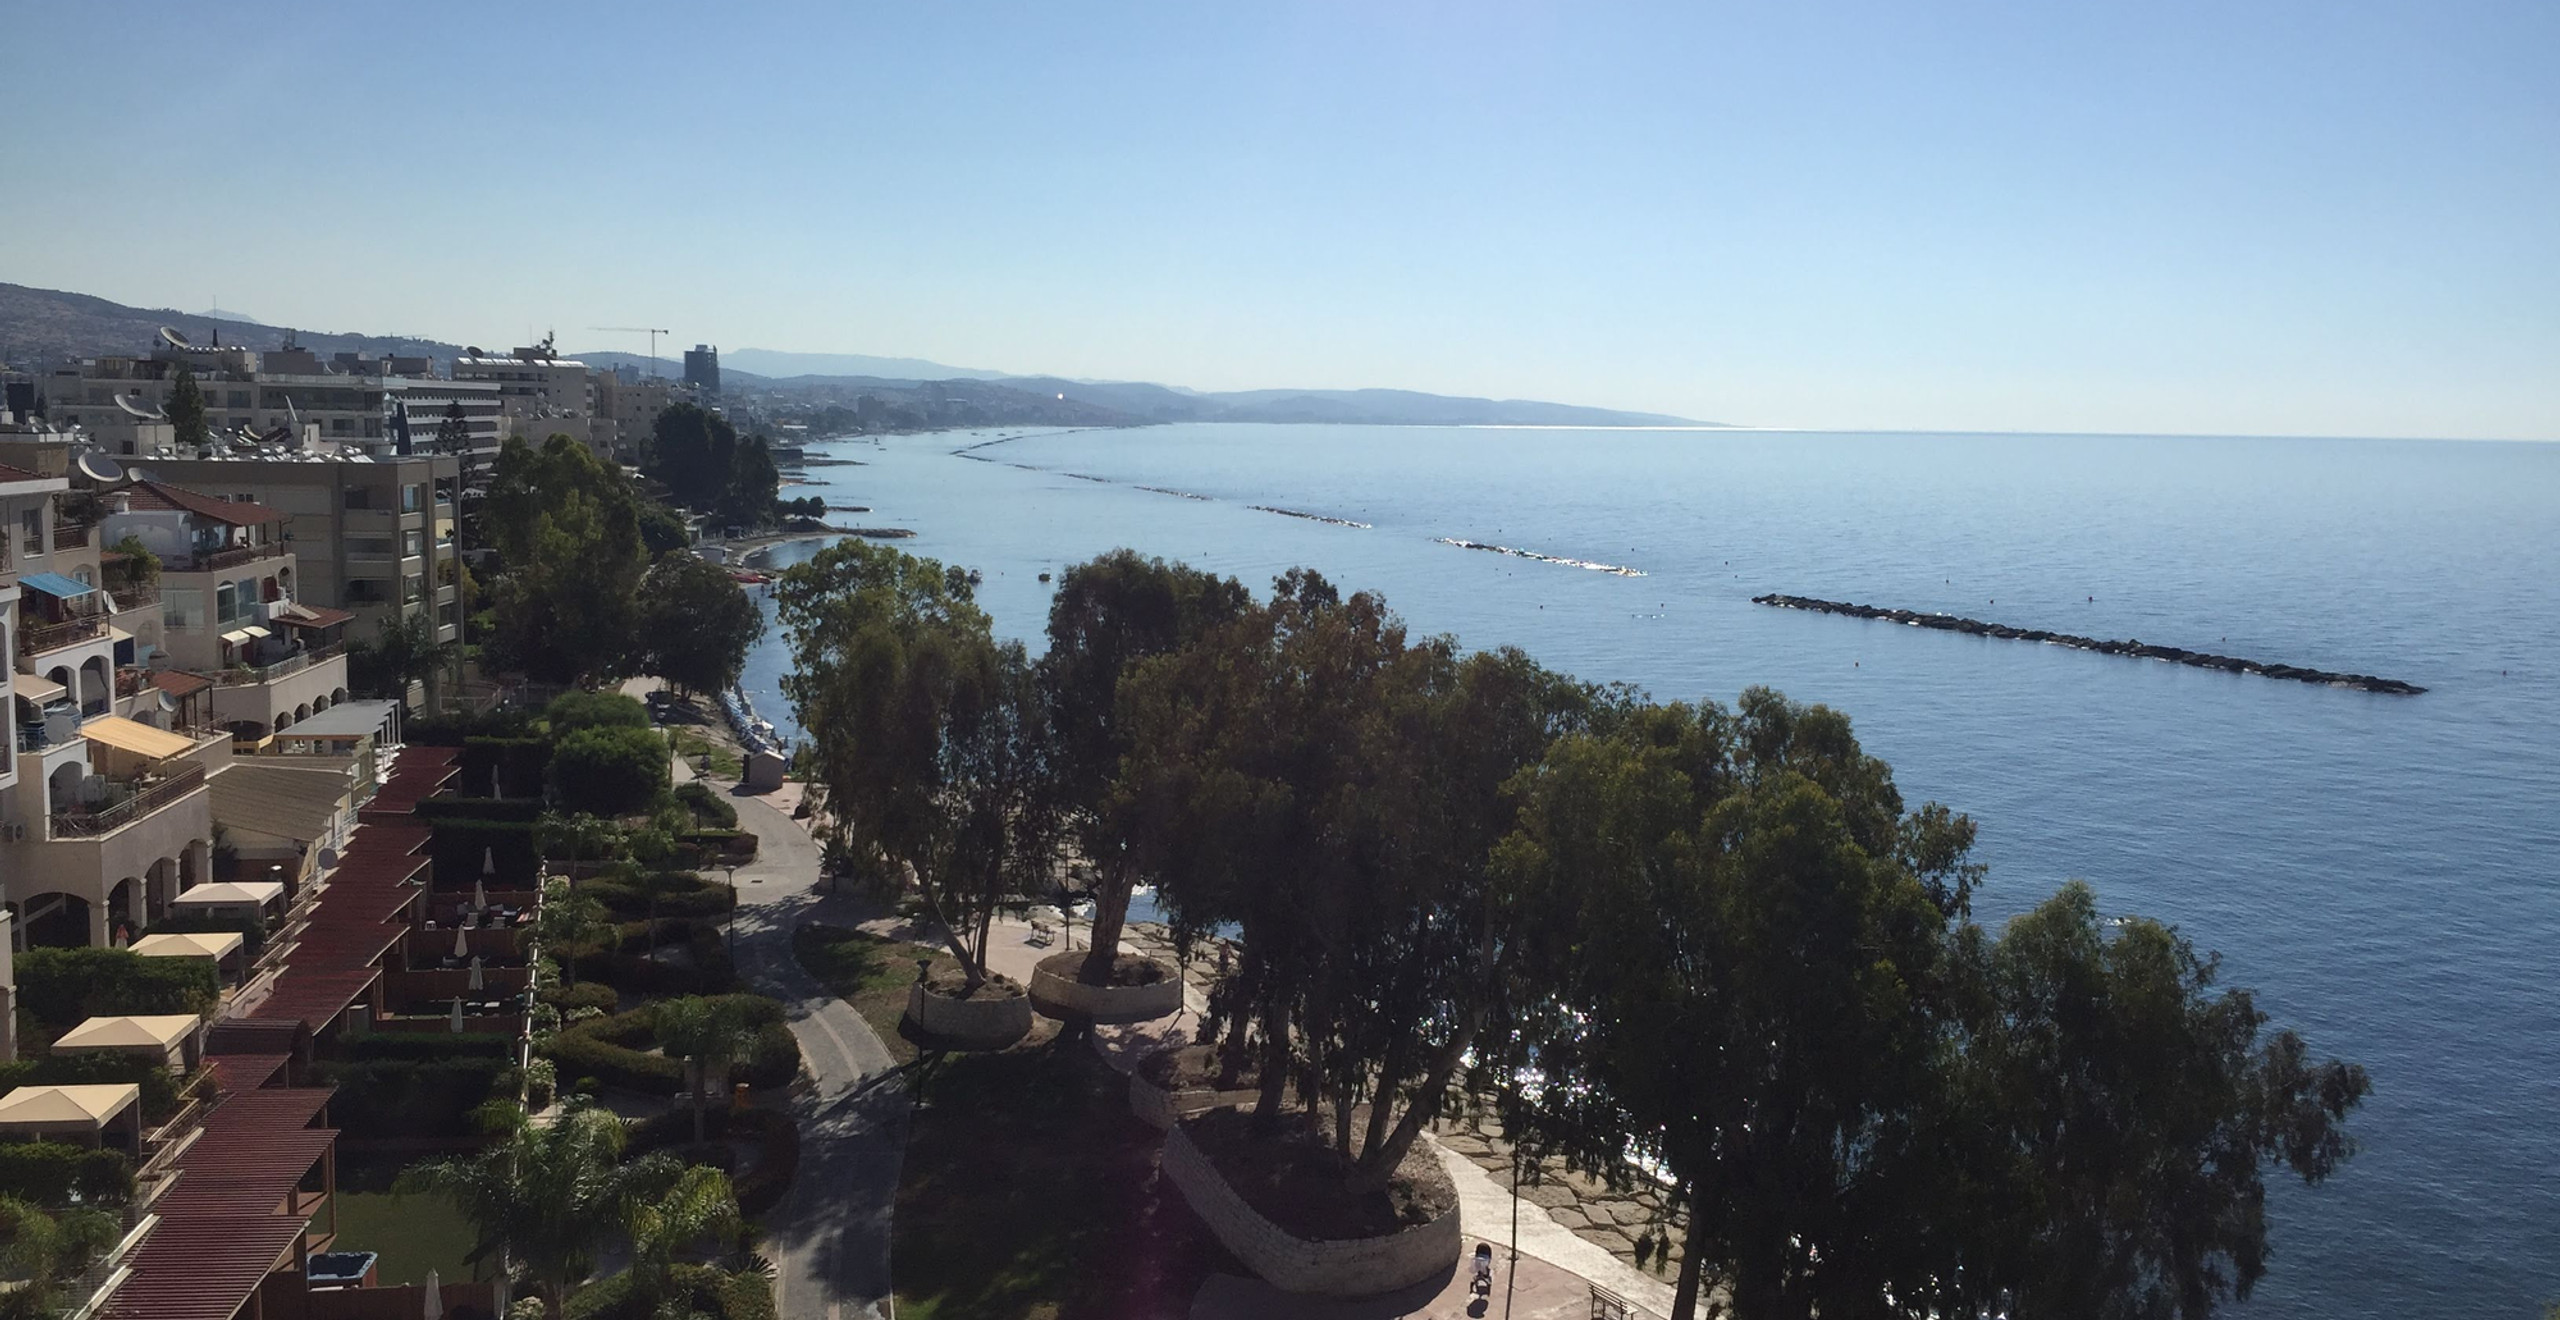 A view from the Amathus, our Limassol hotel